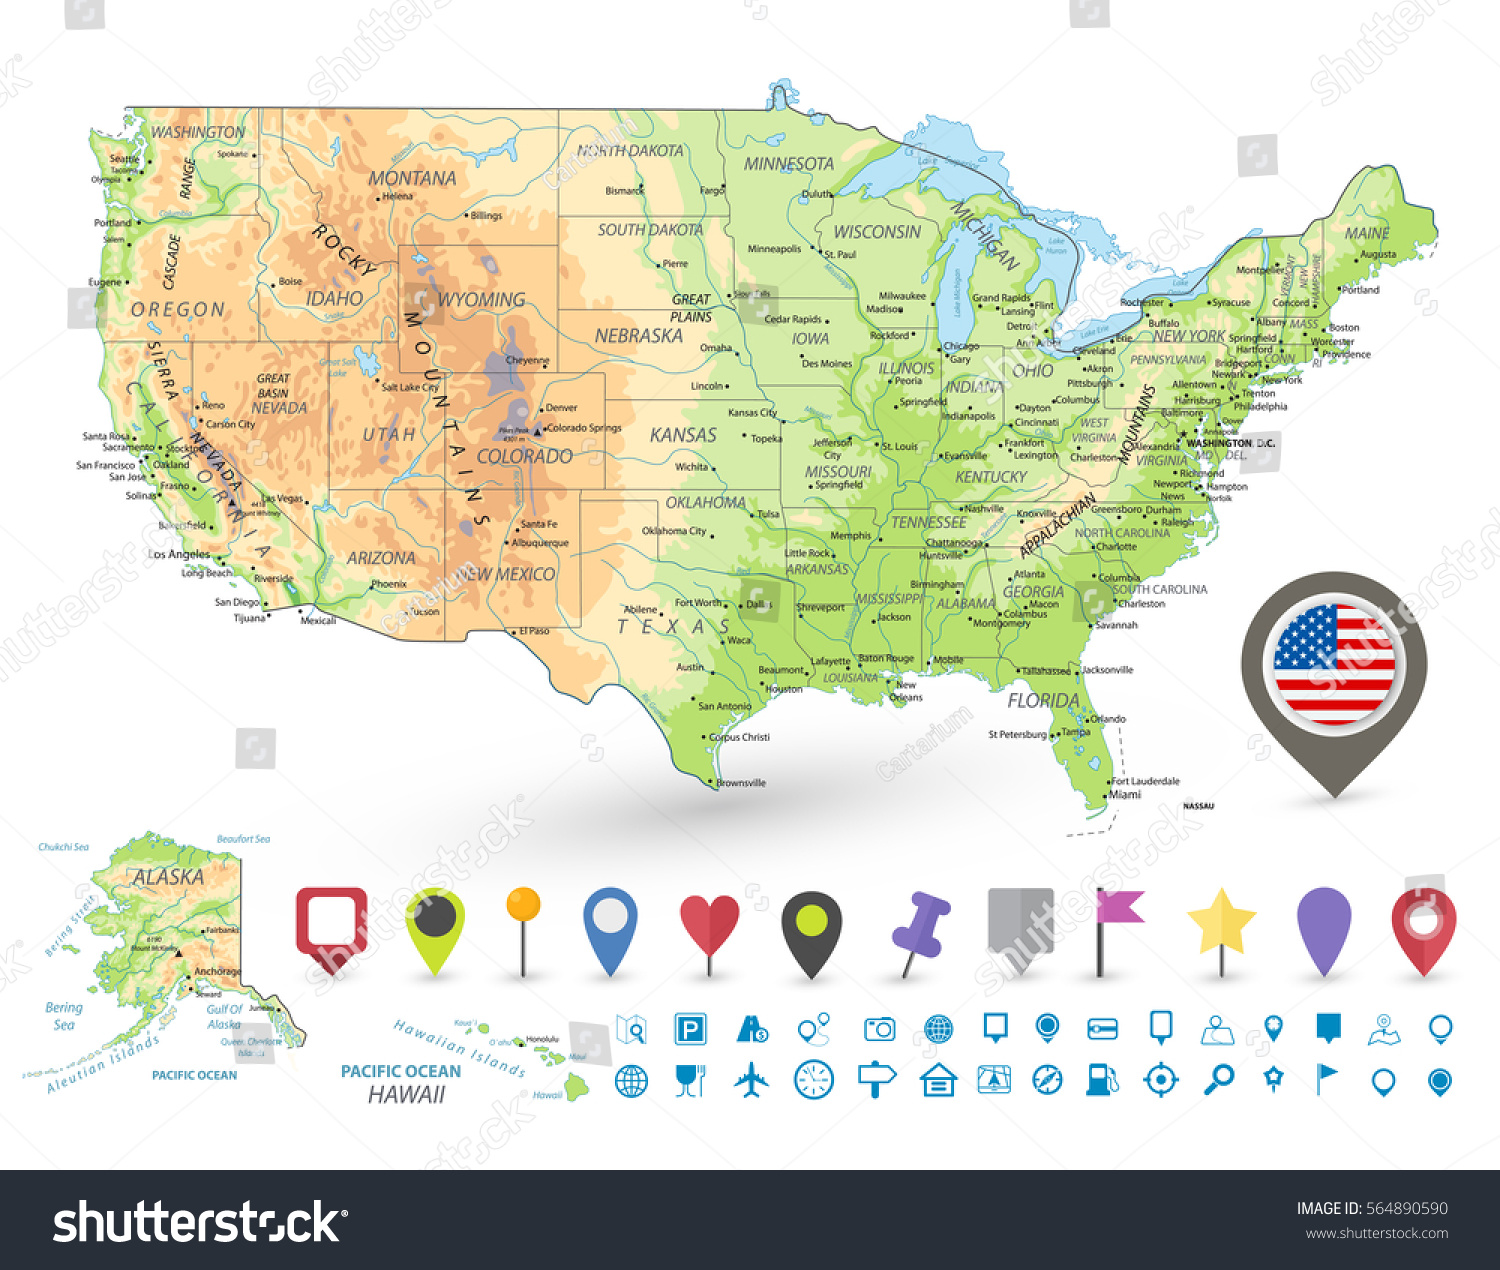 Usa Detailed Physical Map Navigation Icons Stock Vector - Usa detailed map